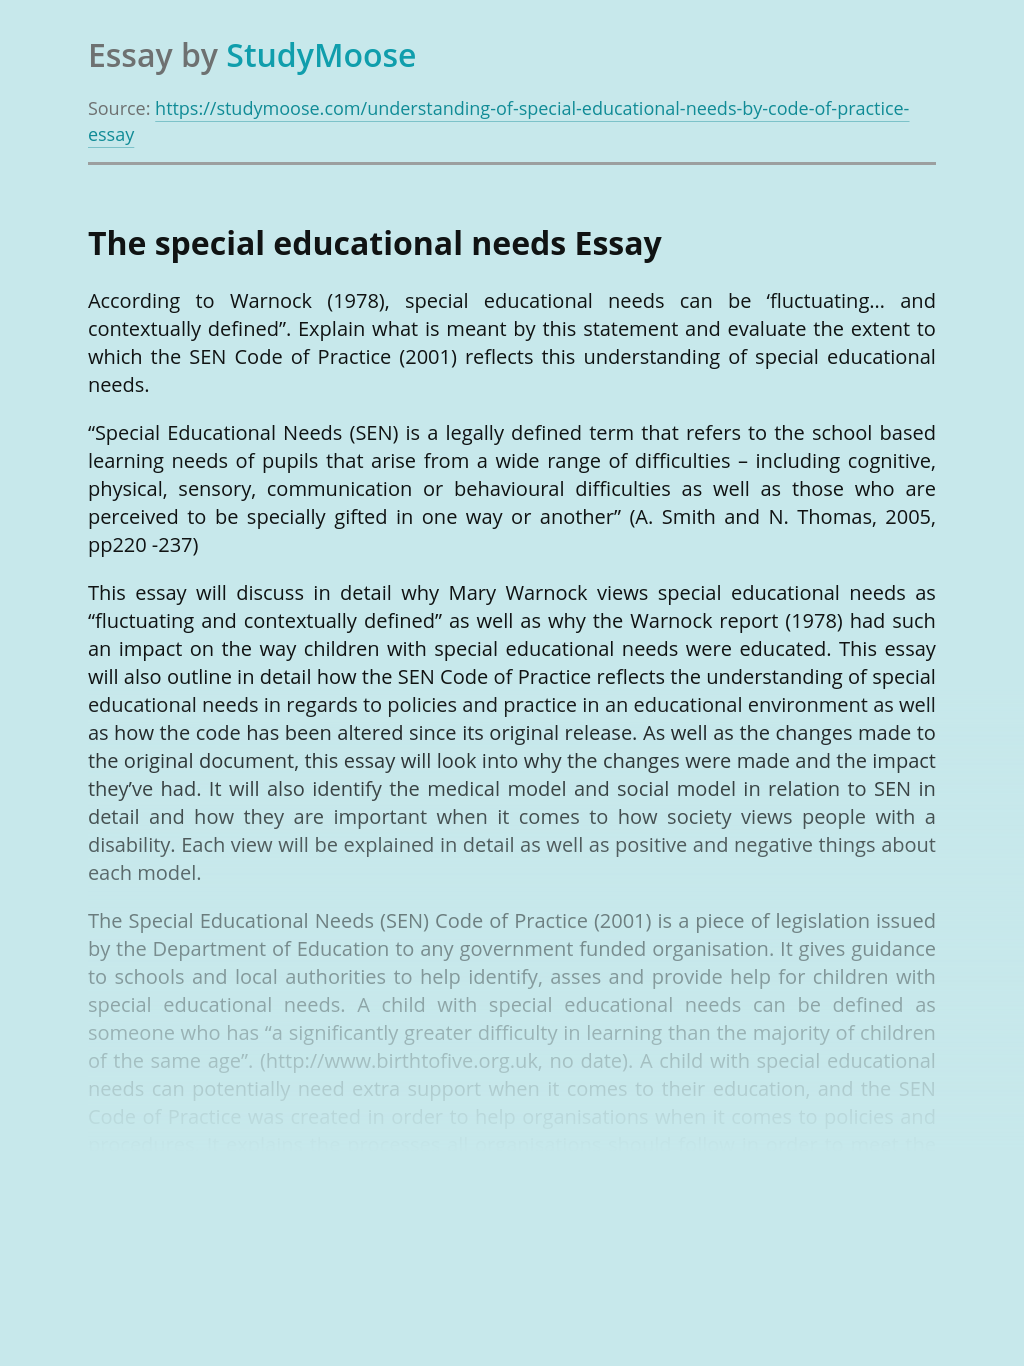 The special educational needs